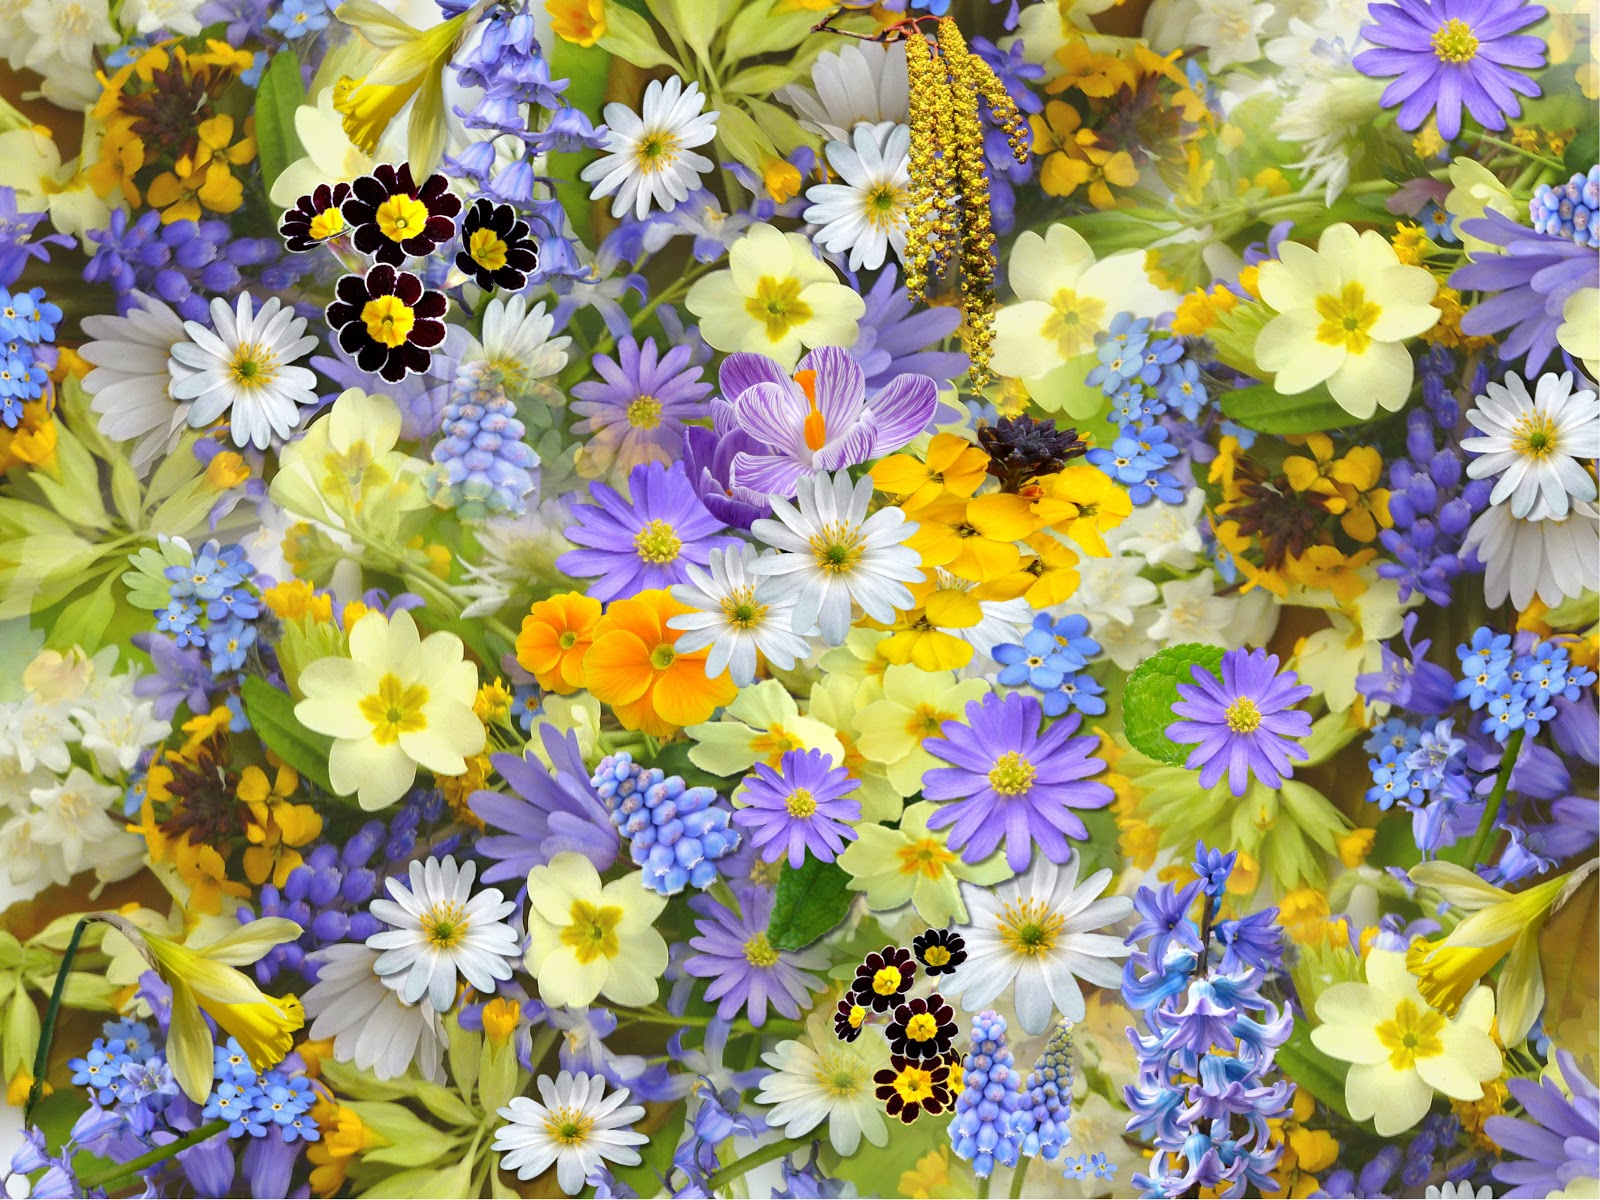 Bed of Flowers